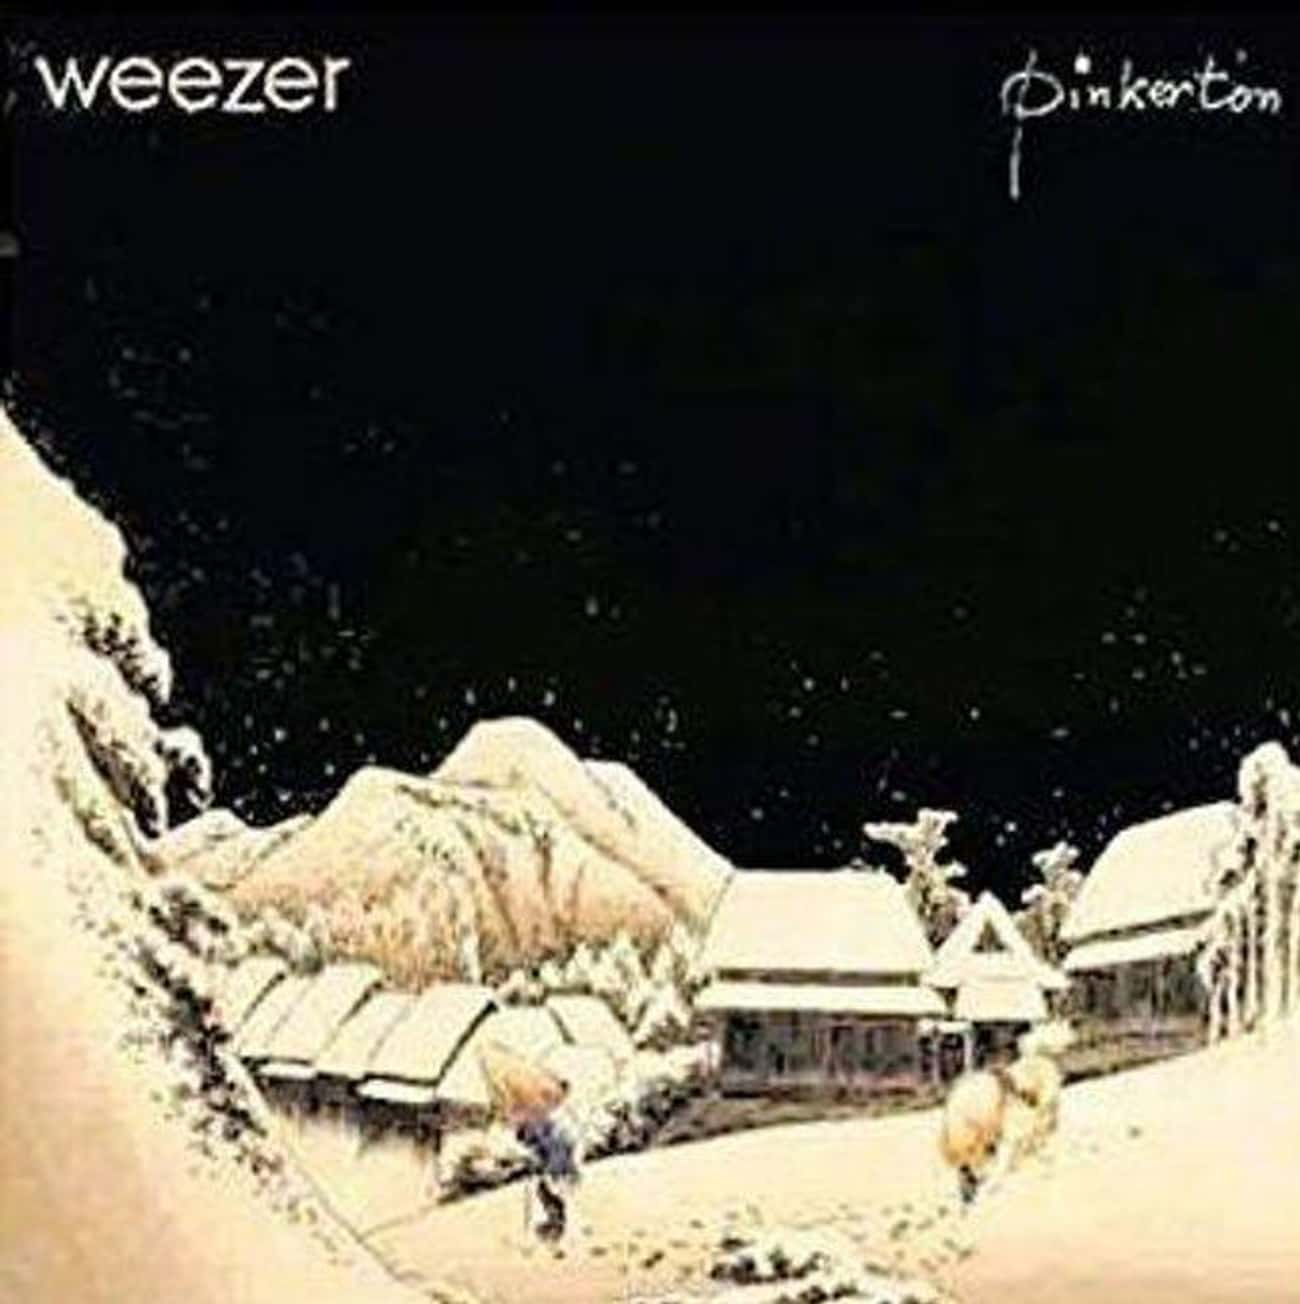 Weezer - 'Pinkerton' is listed (or ranked) 4 on the list The 12 Strangest Albums With Rabid Cult Followings